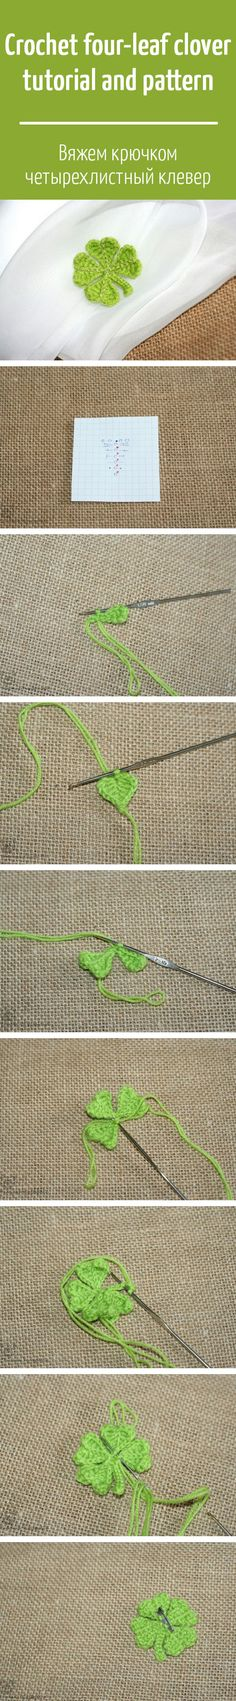 Crochet four-leaf clover tutorial and pattern /Вяжем четырехлистный клевер крючком #art #inspiration #handmade На удачу!